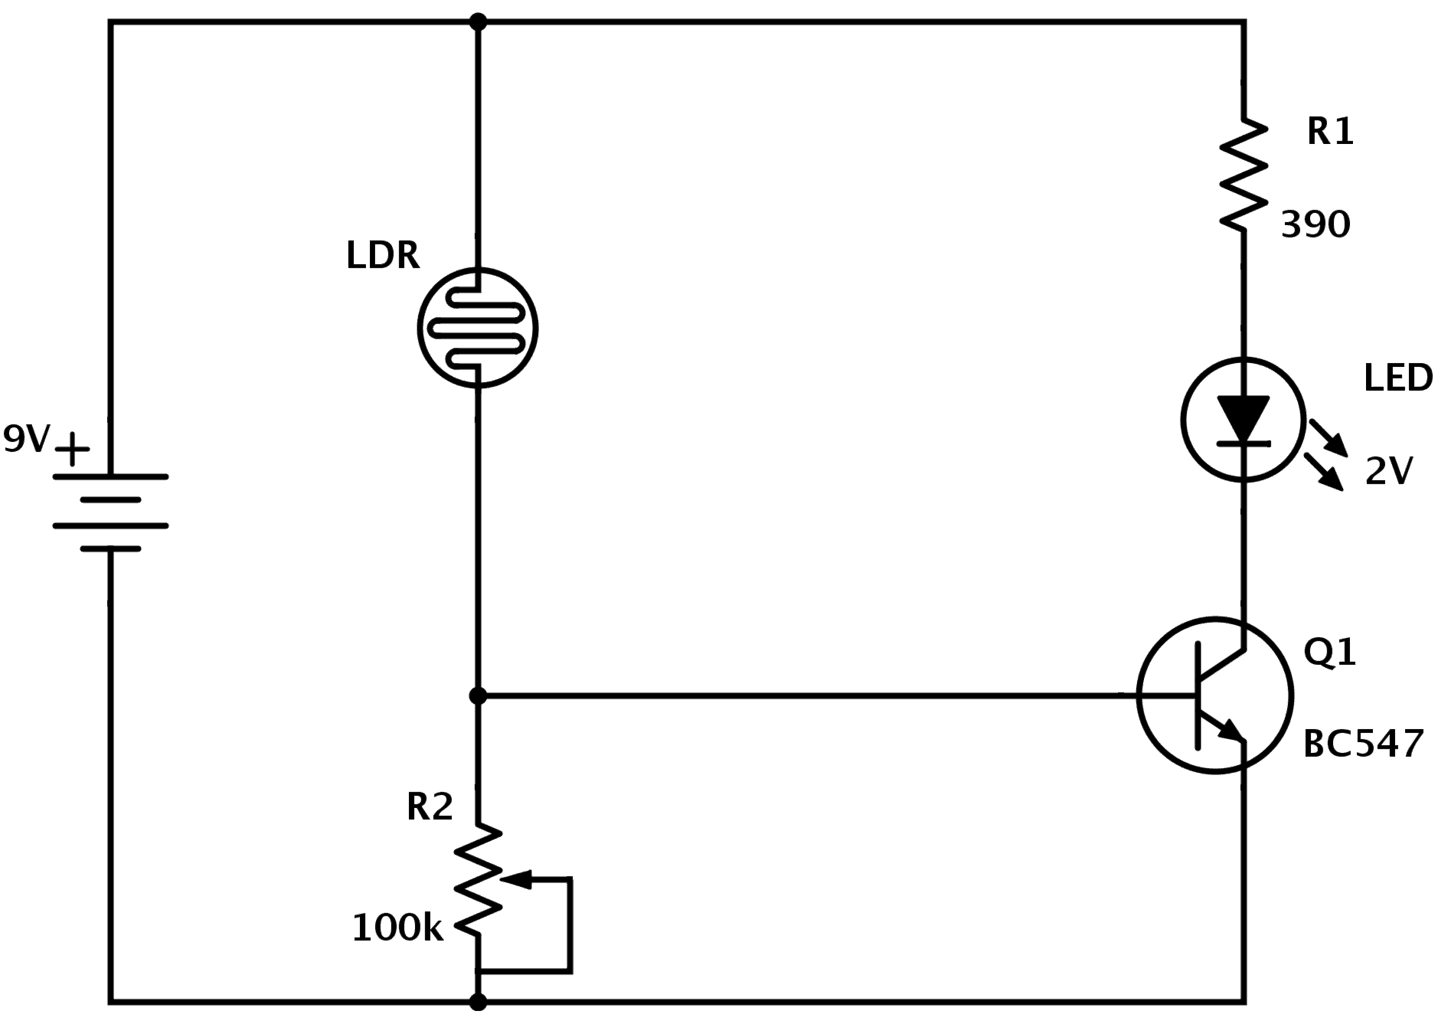 Ldr Circuit Diagram Build Electronic Circuits Way Switch Multiple Lights Between Switches 1 Pdf